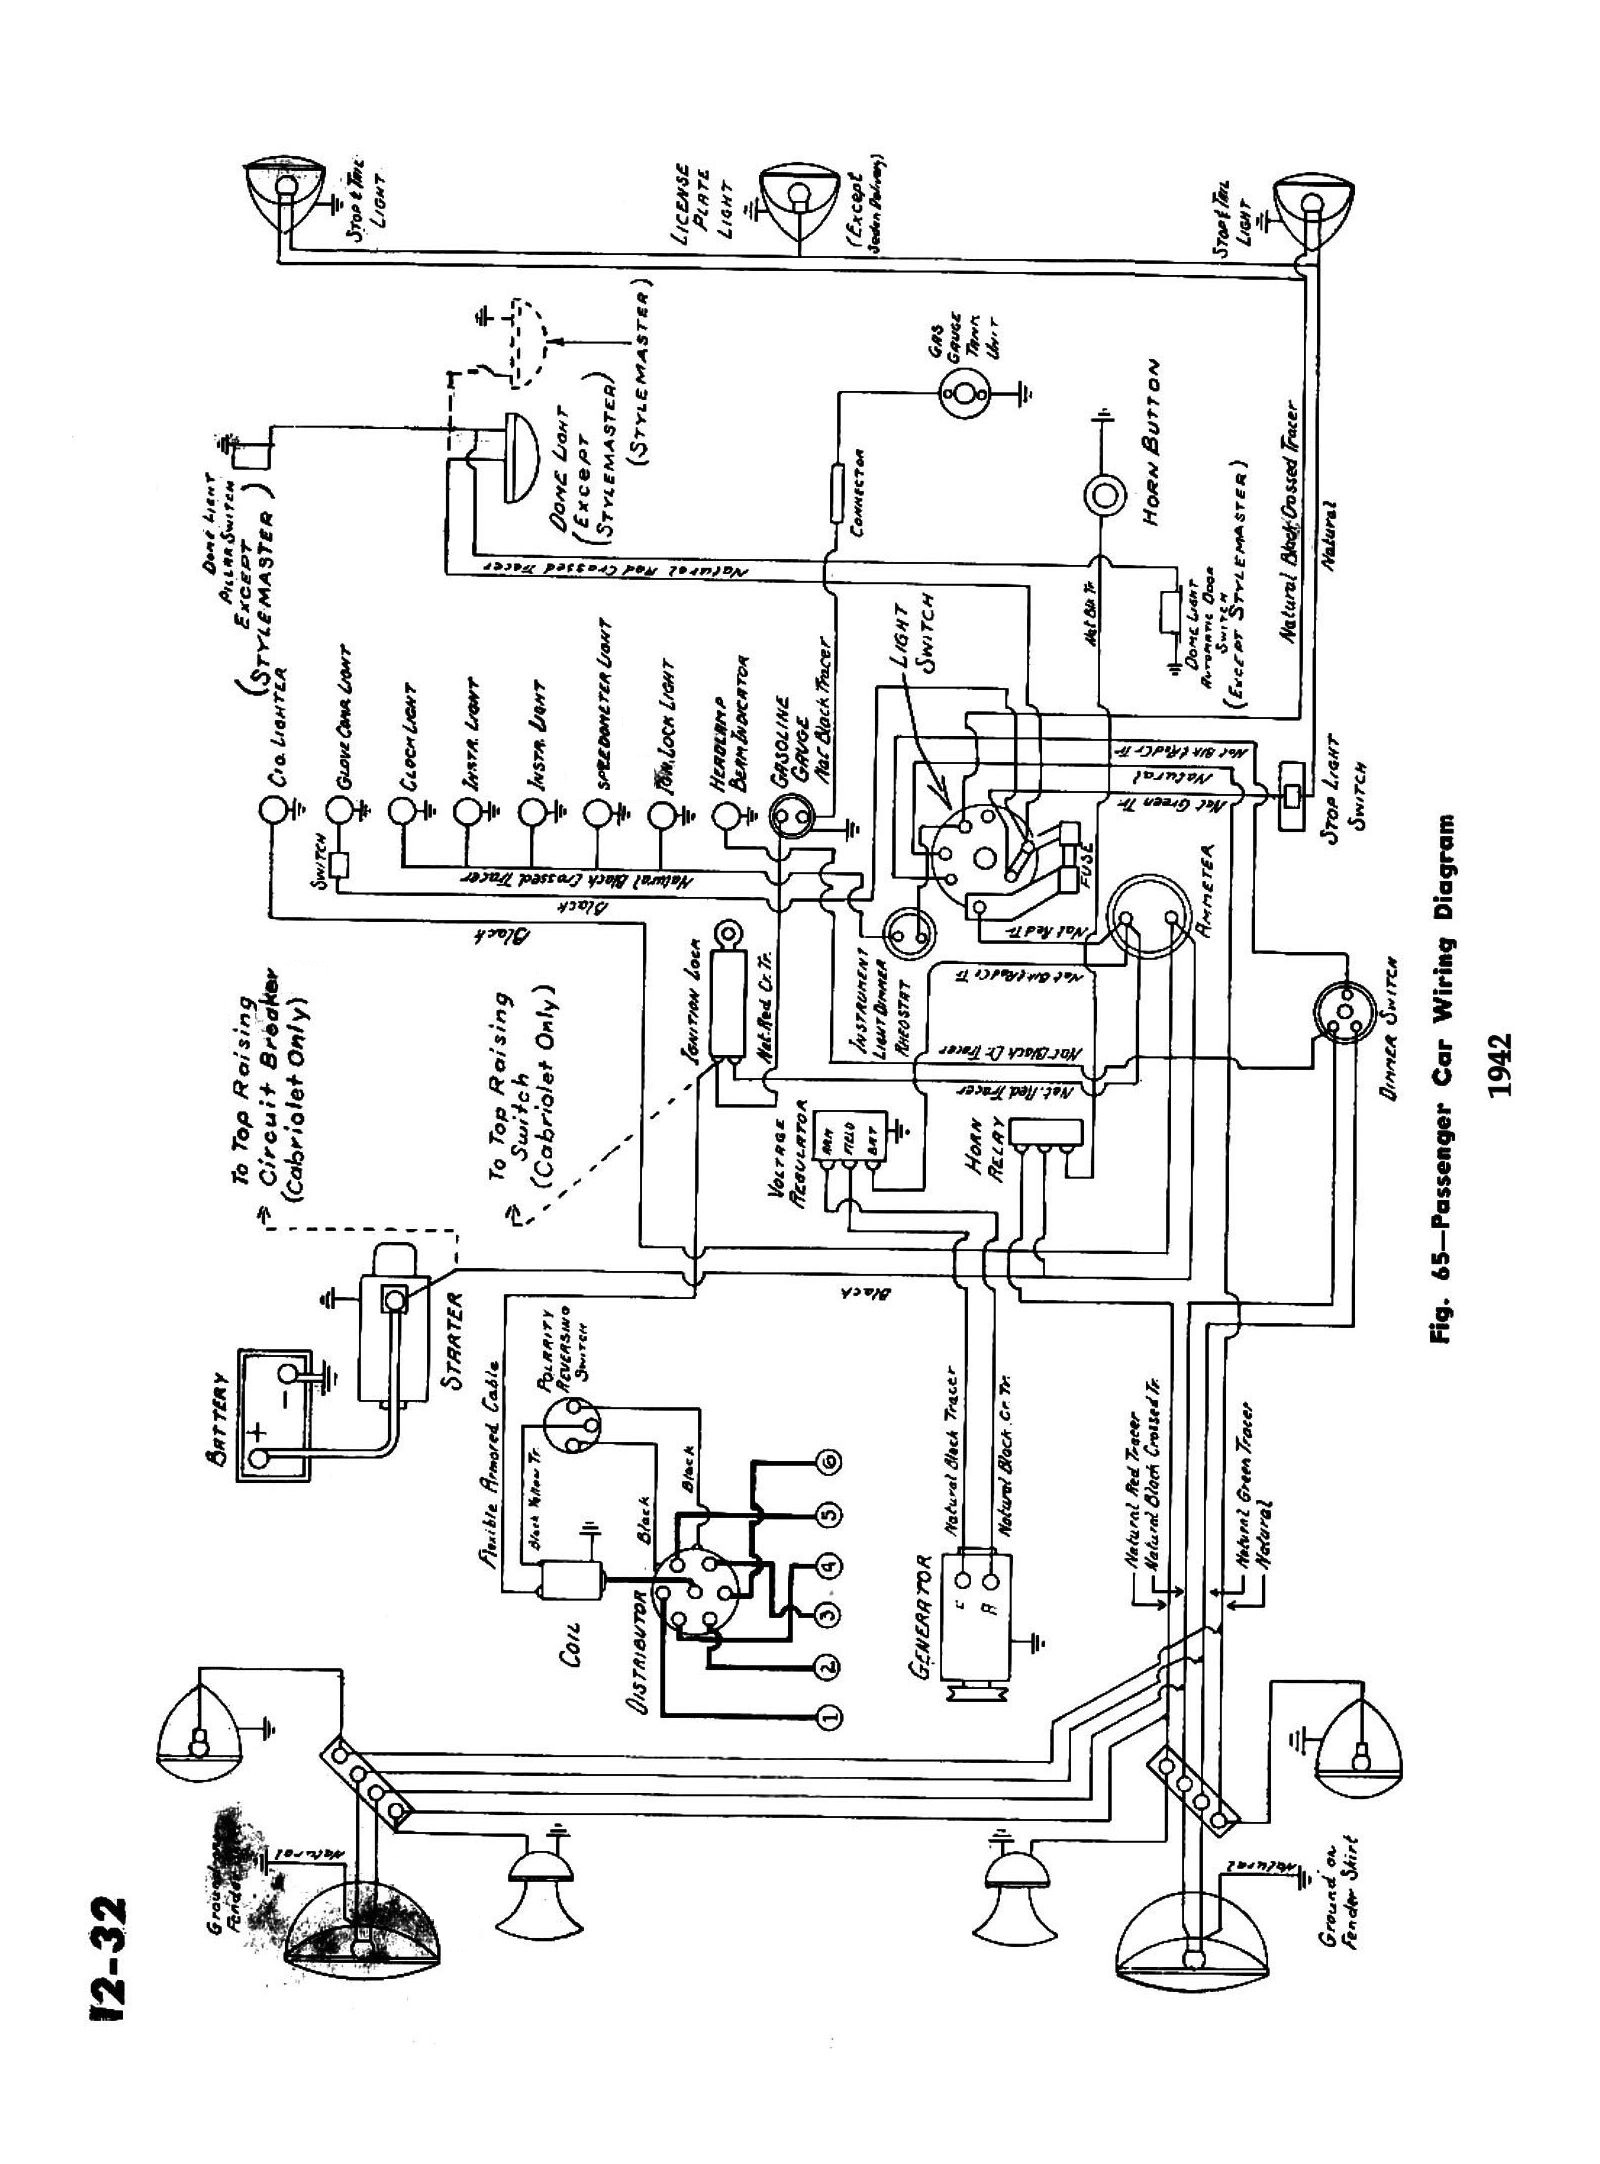 Chevy Wiring Diagrams Dodge Pcm Circuit Diagram 1942 Passenger Car